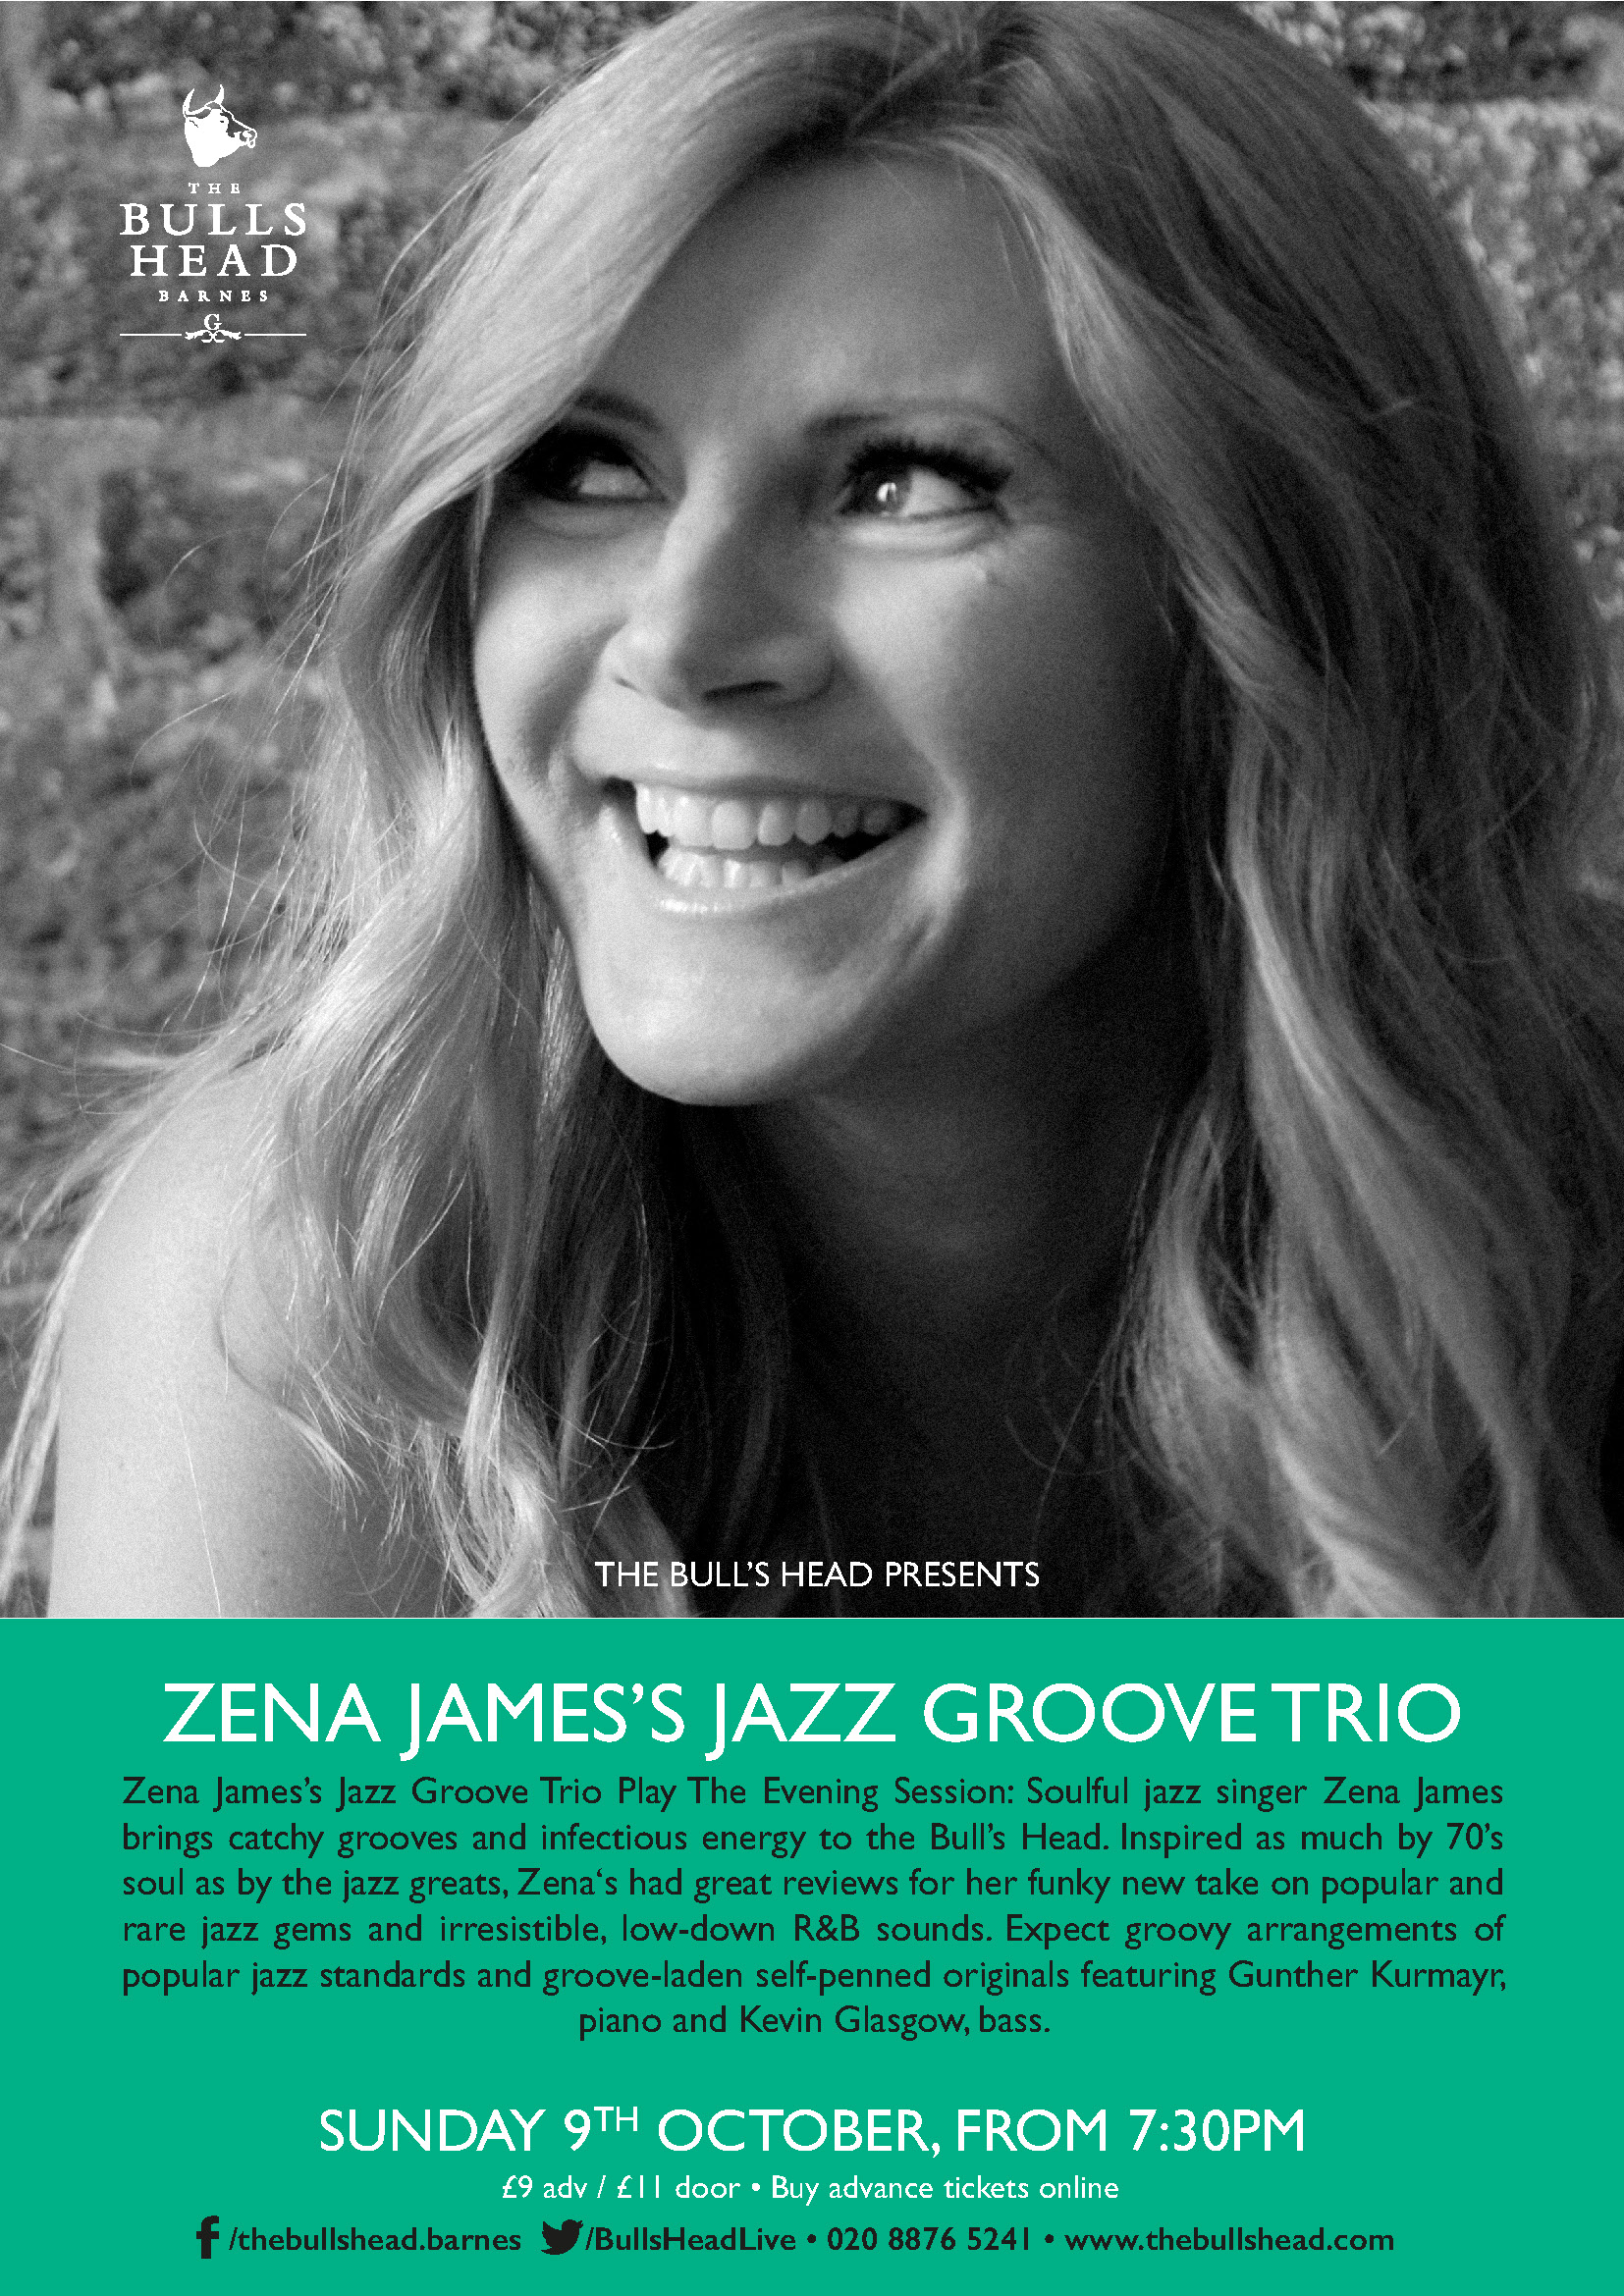 Zena James's Jazz Groove Trio Play The Evening Session